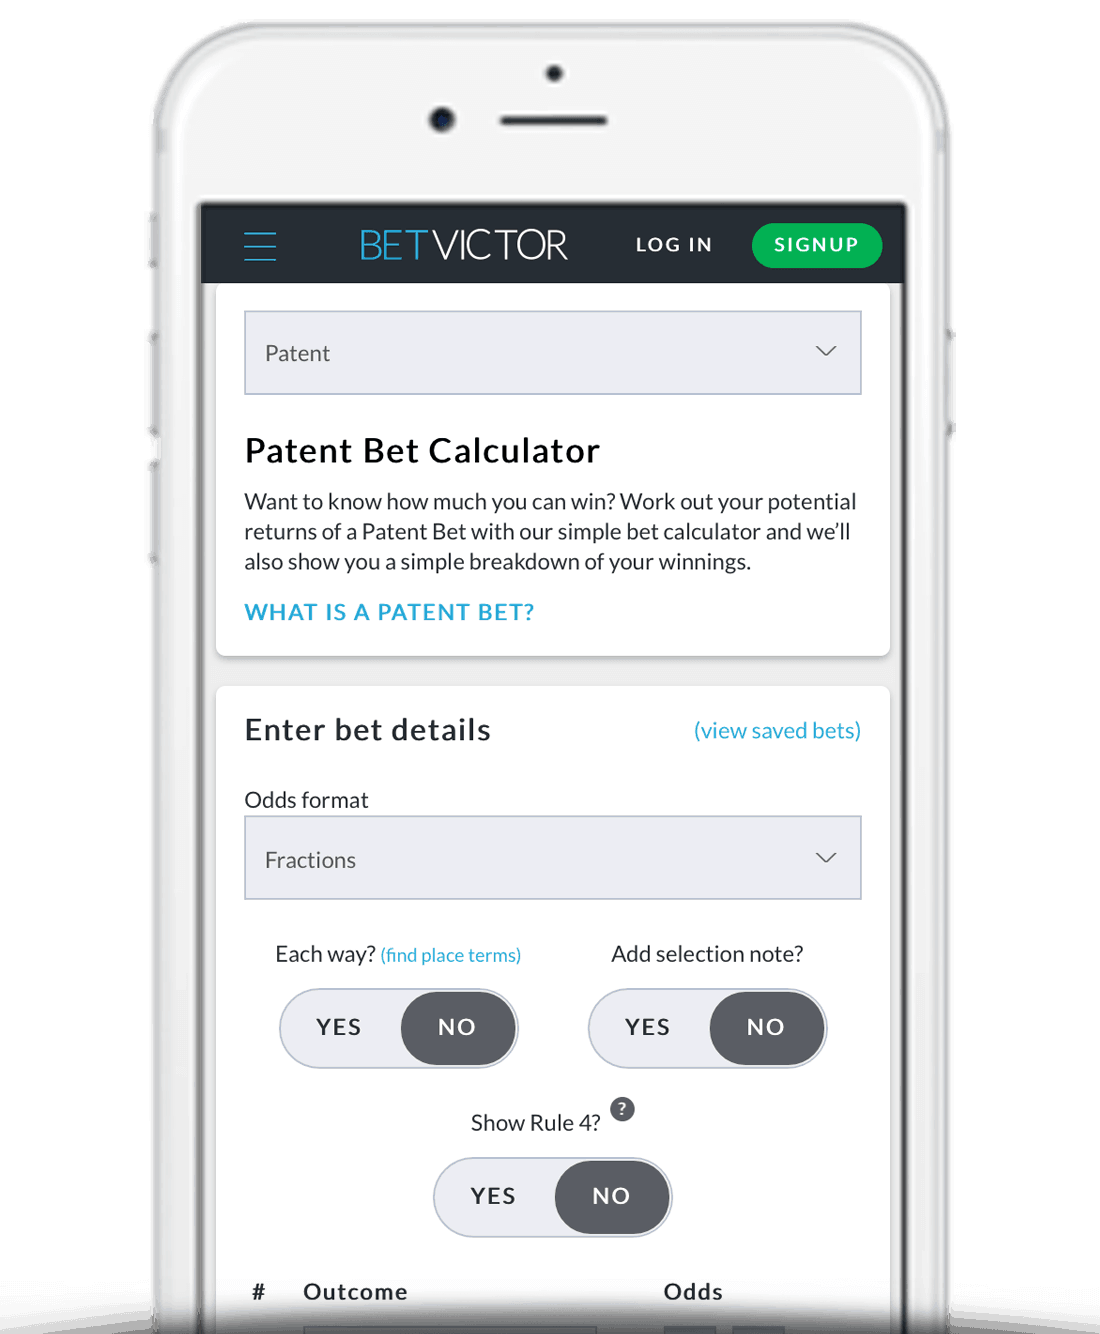 Patent Bet Calculator